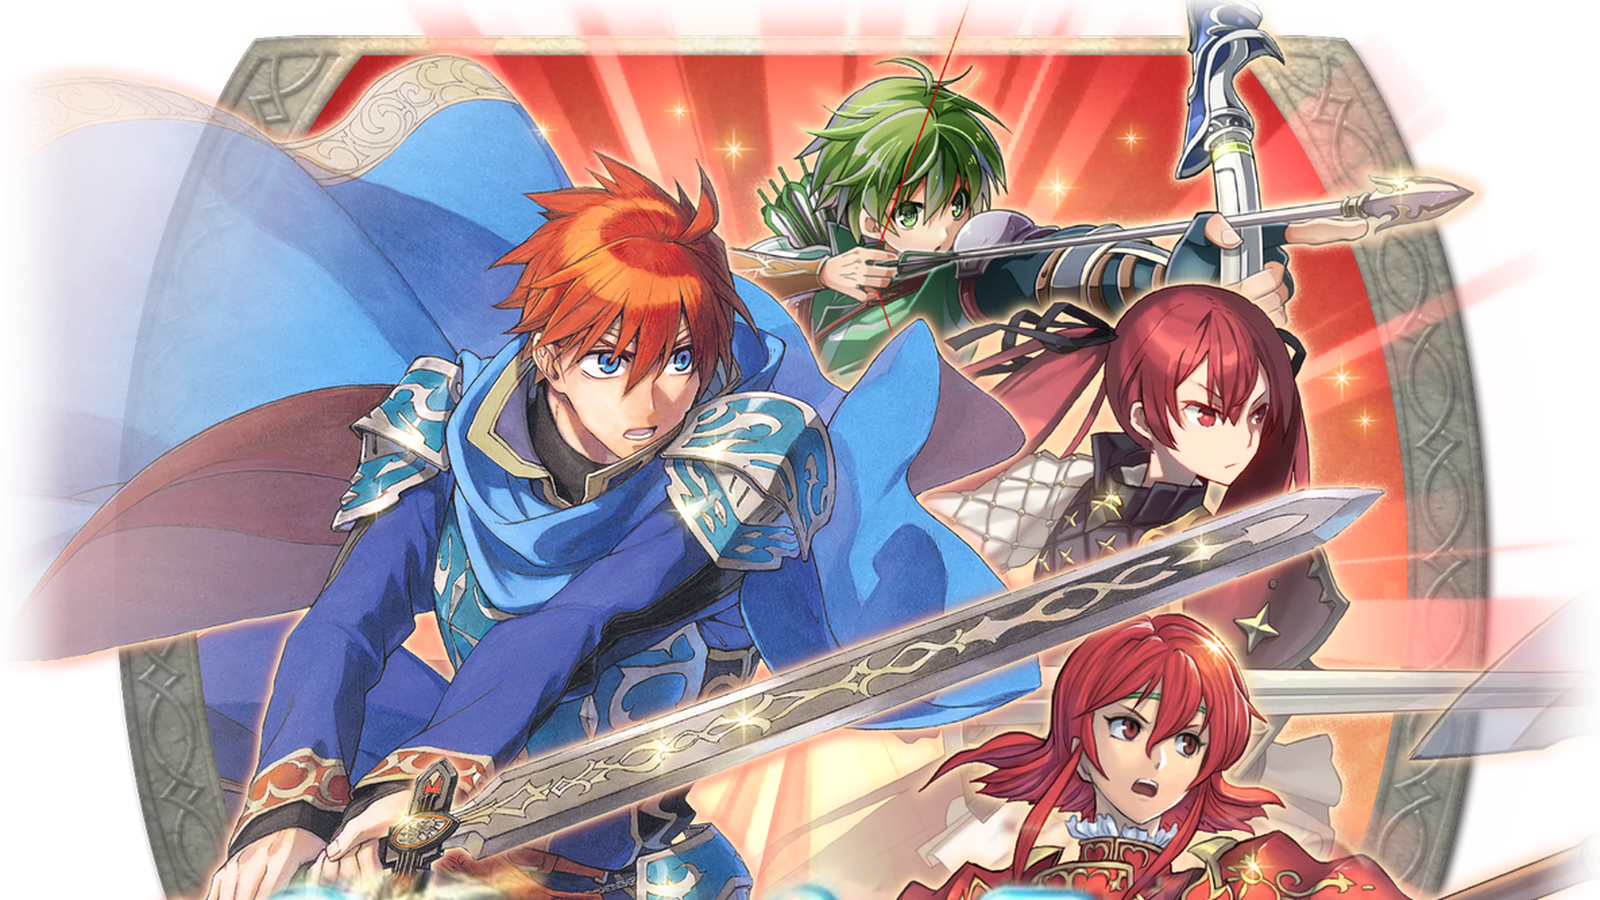 Fire Emblem Heroes' April update adds a huge quality-of-life change